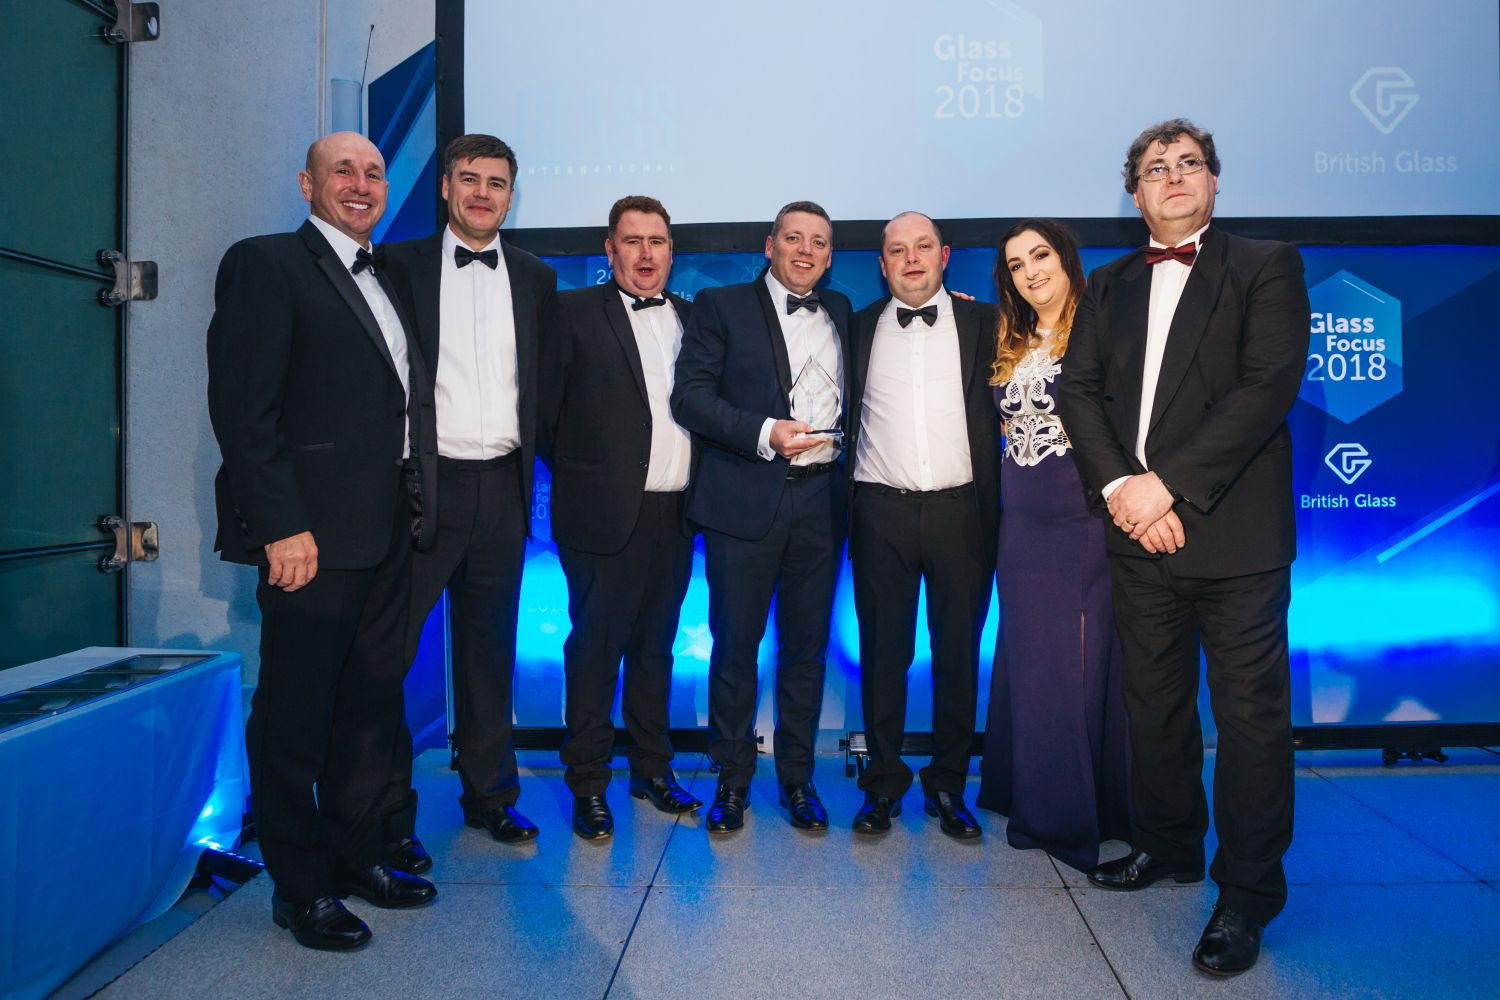 British Glass Company of the Year Electric Glass Fibre UK. and Dave Dalton of British Glass